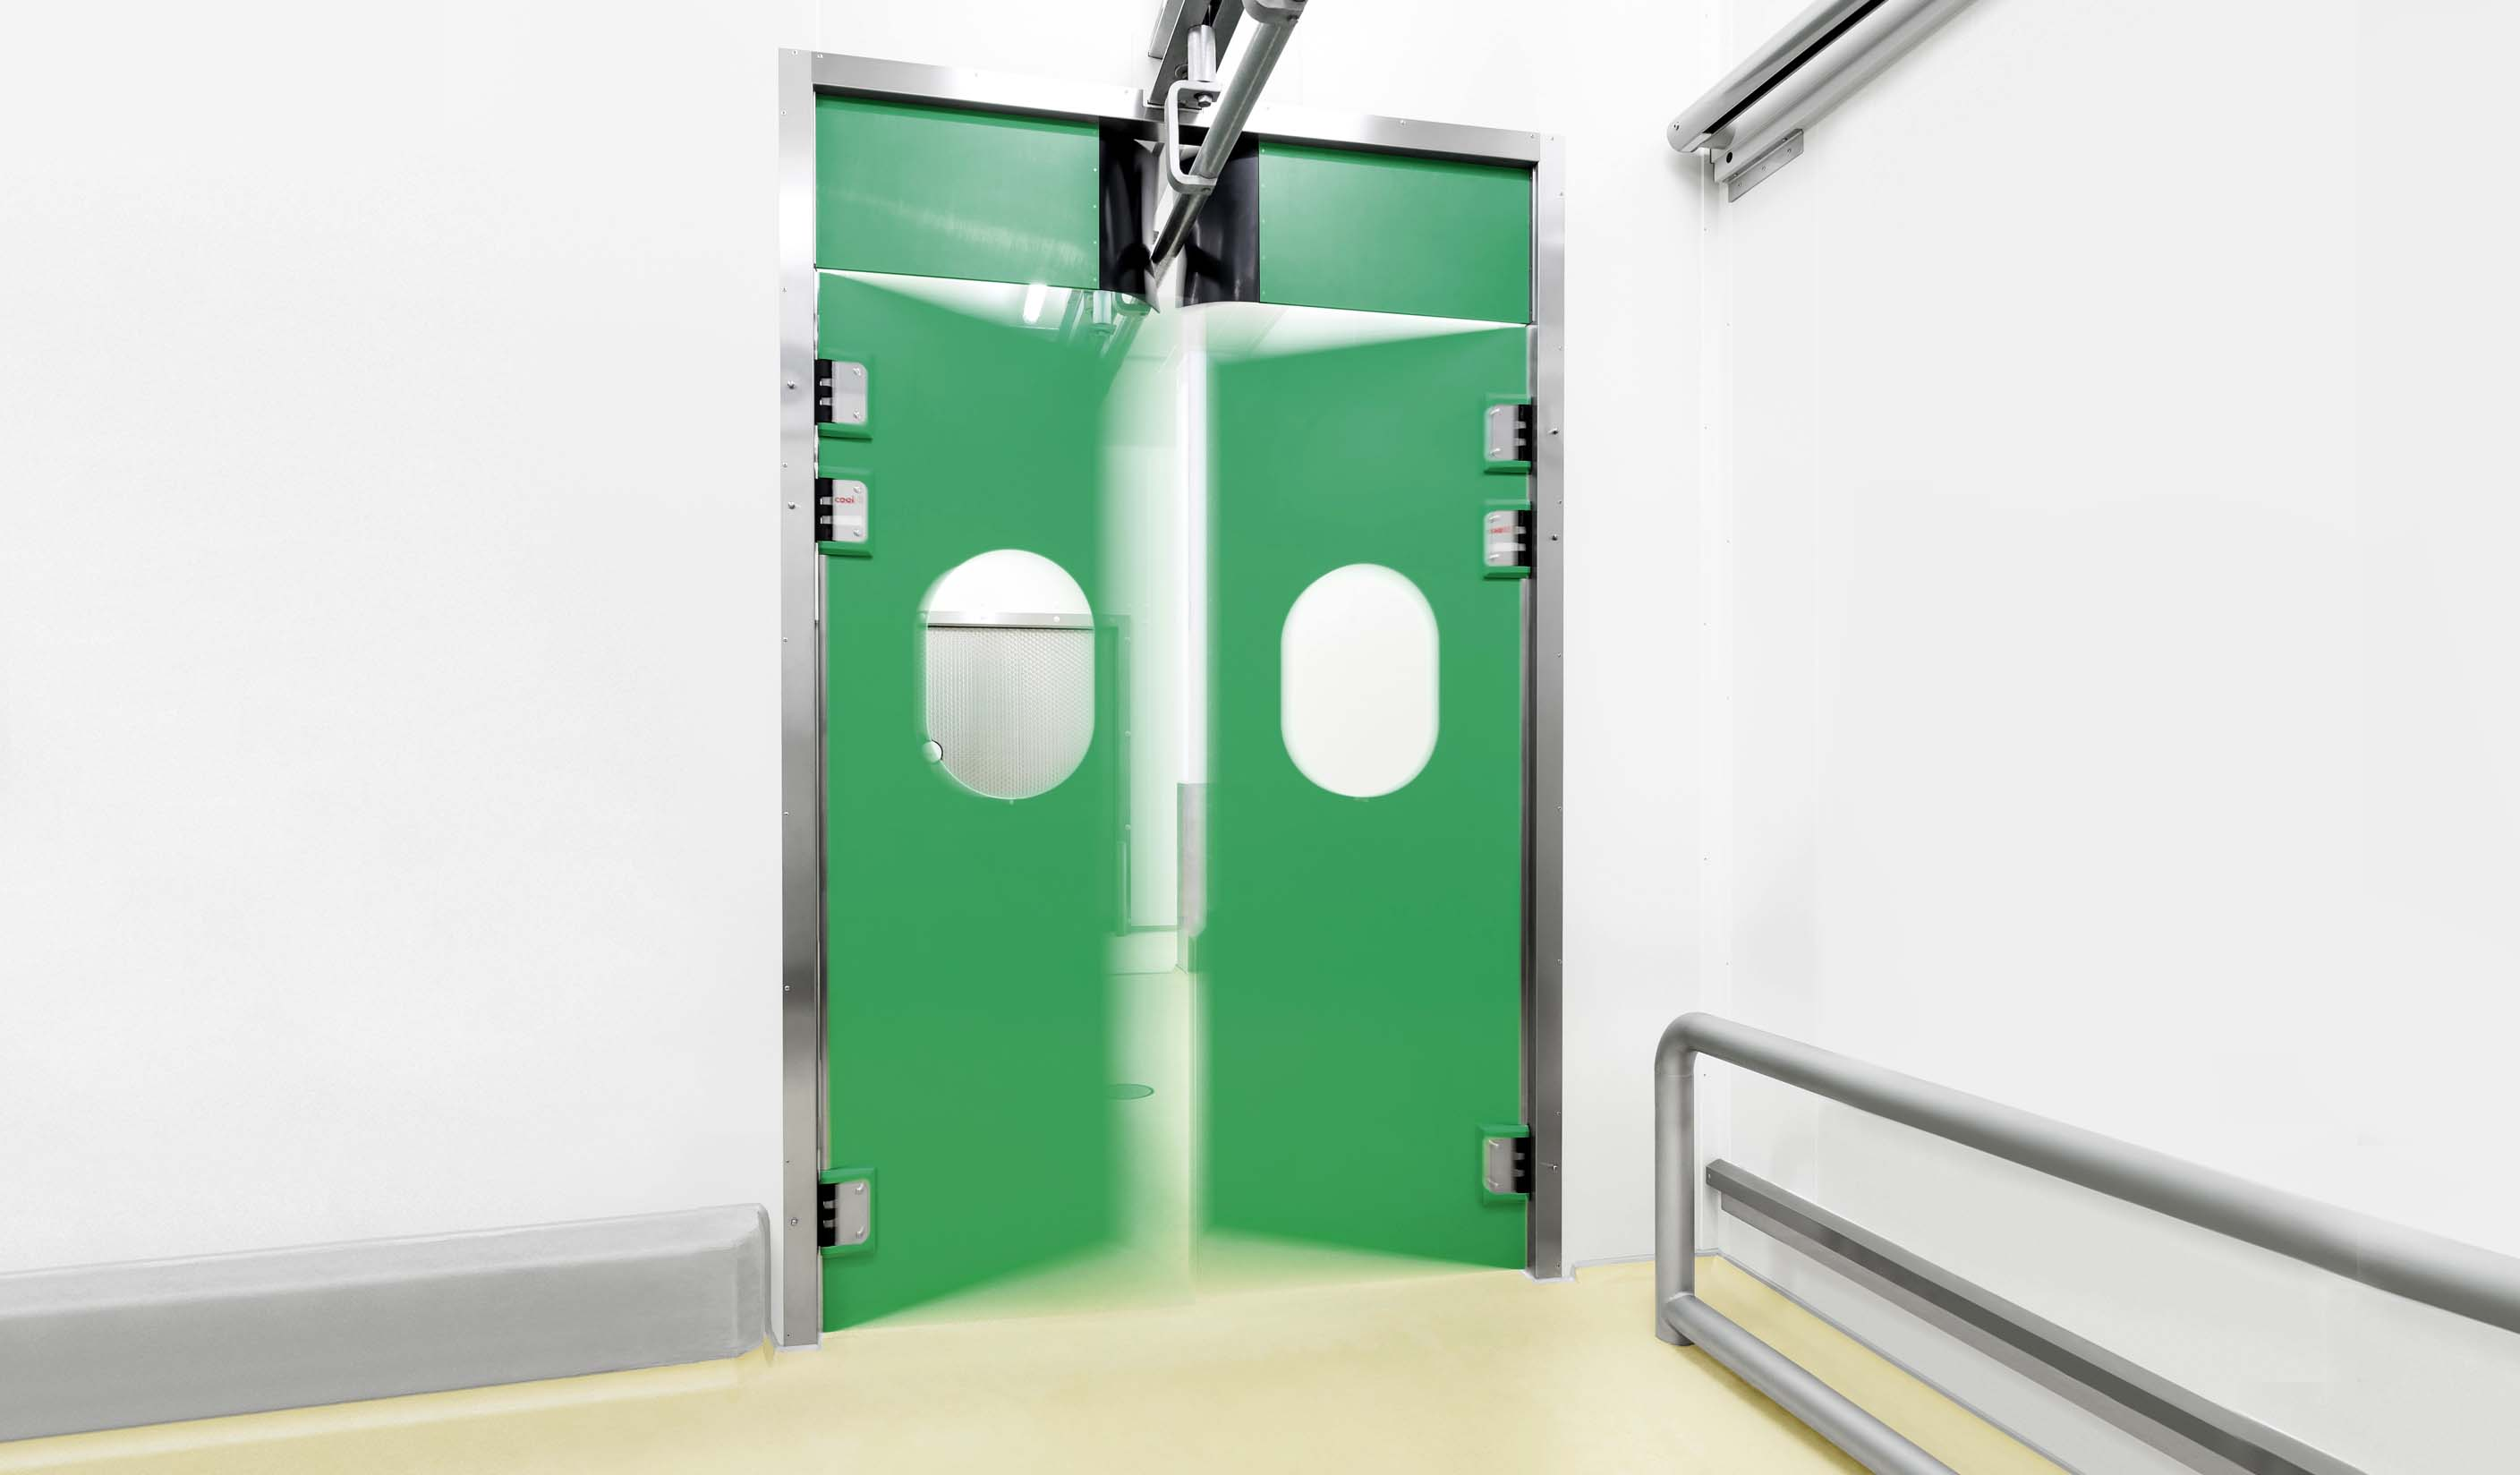 ZP5 Double-leaf PE swing door with meat rail passage